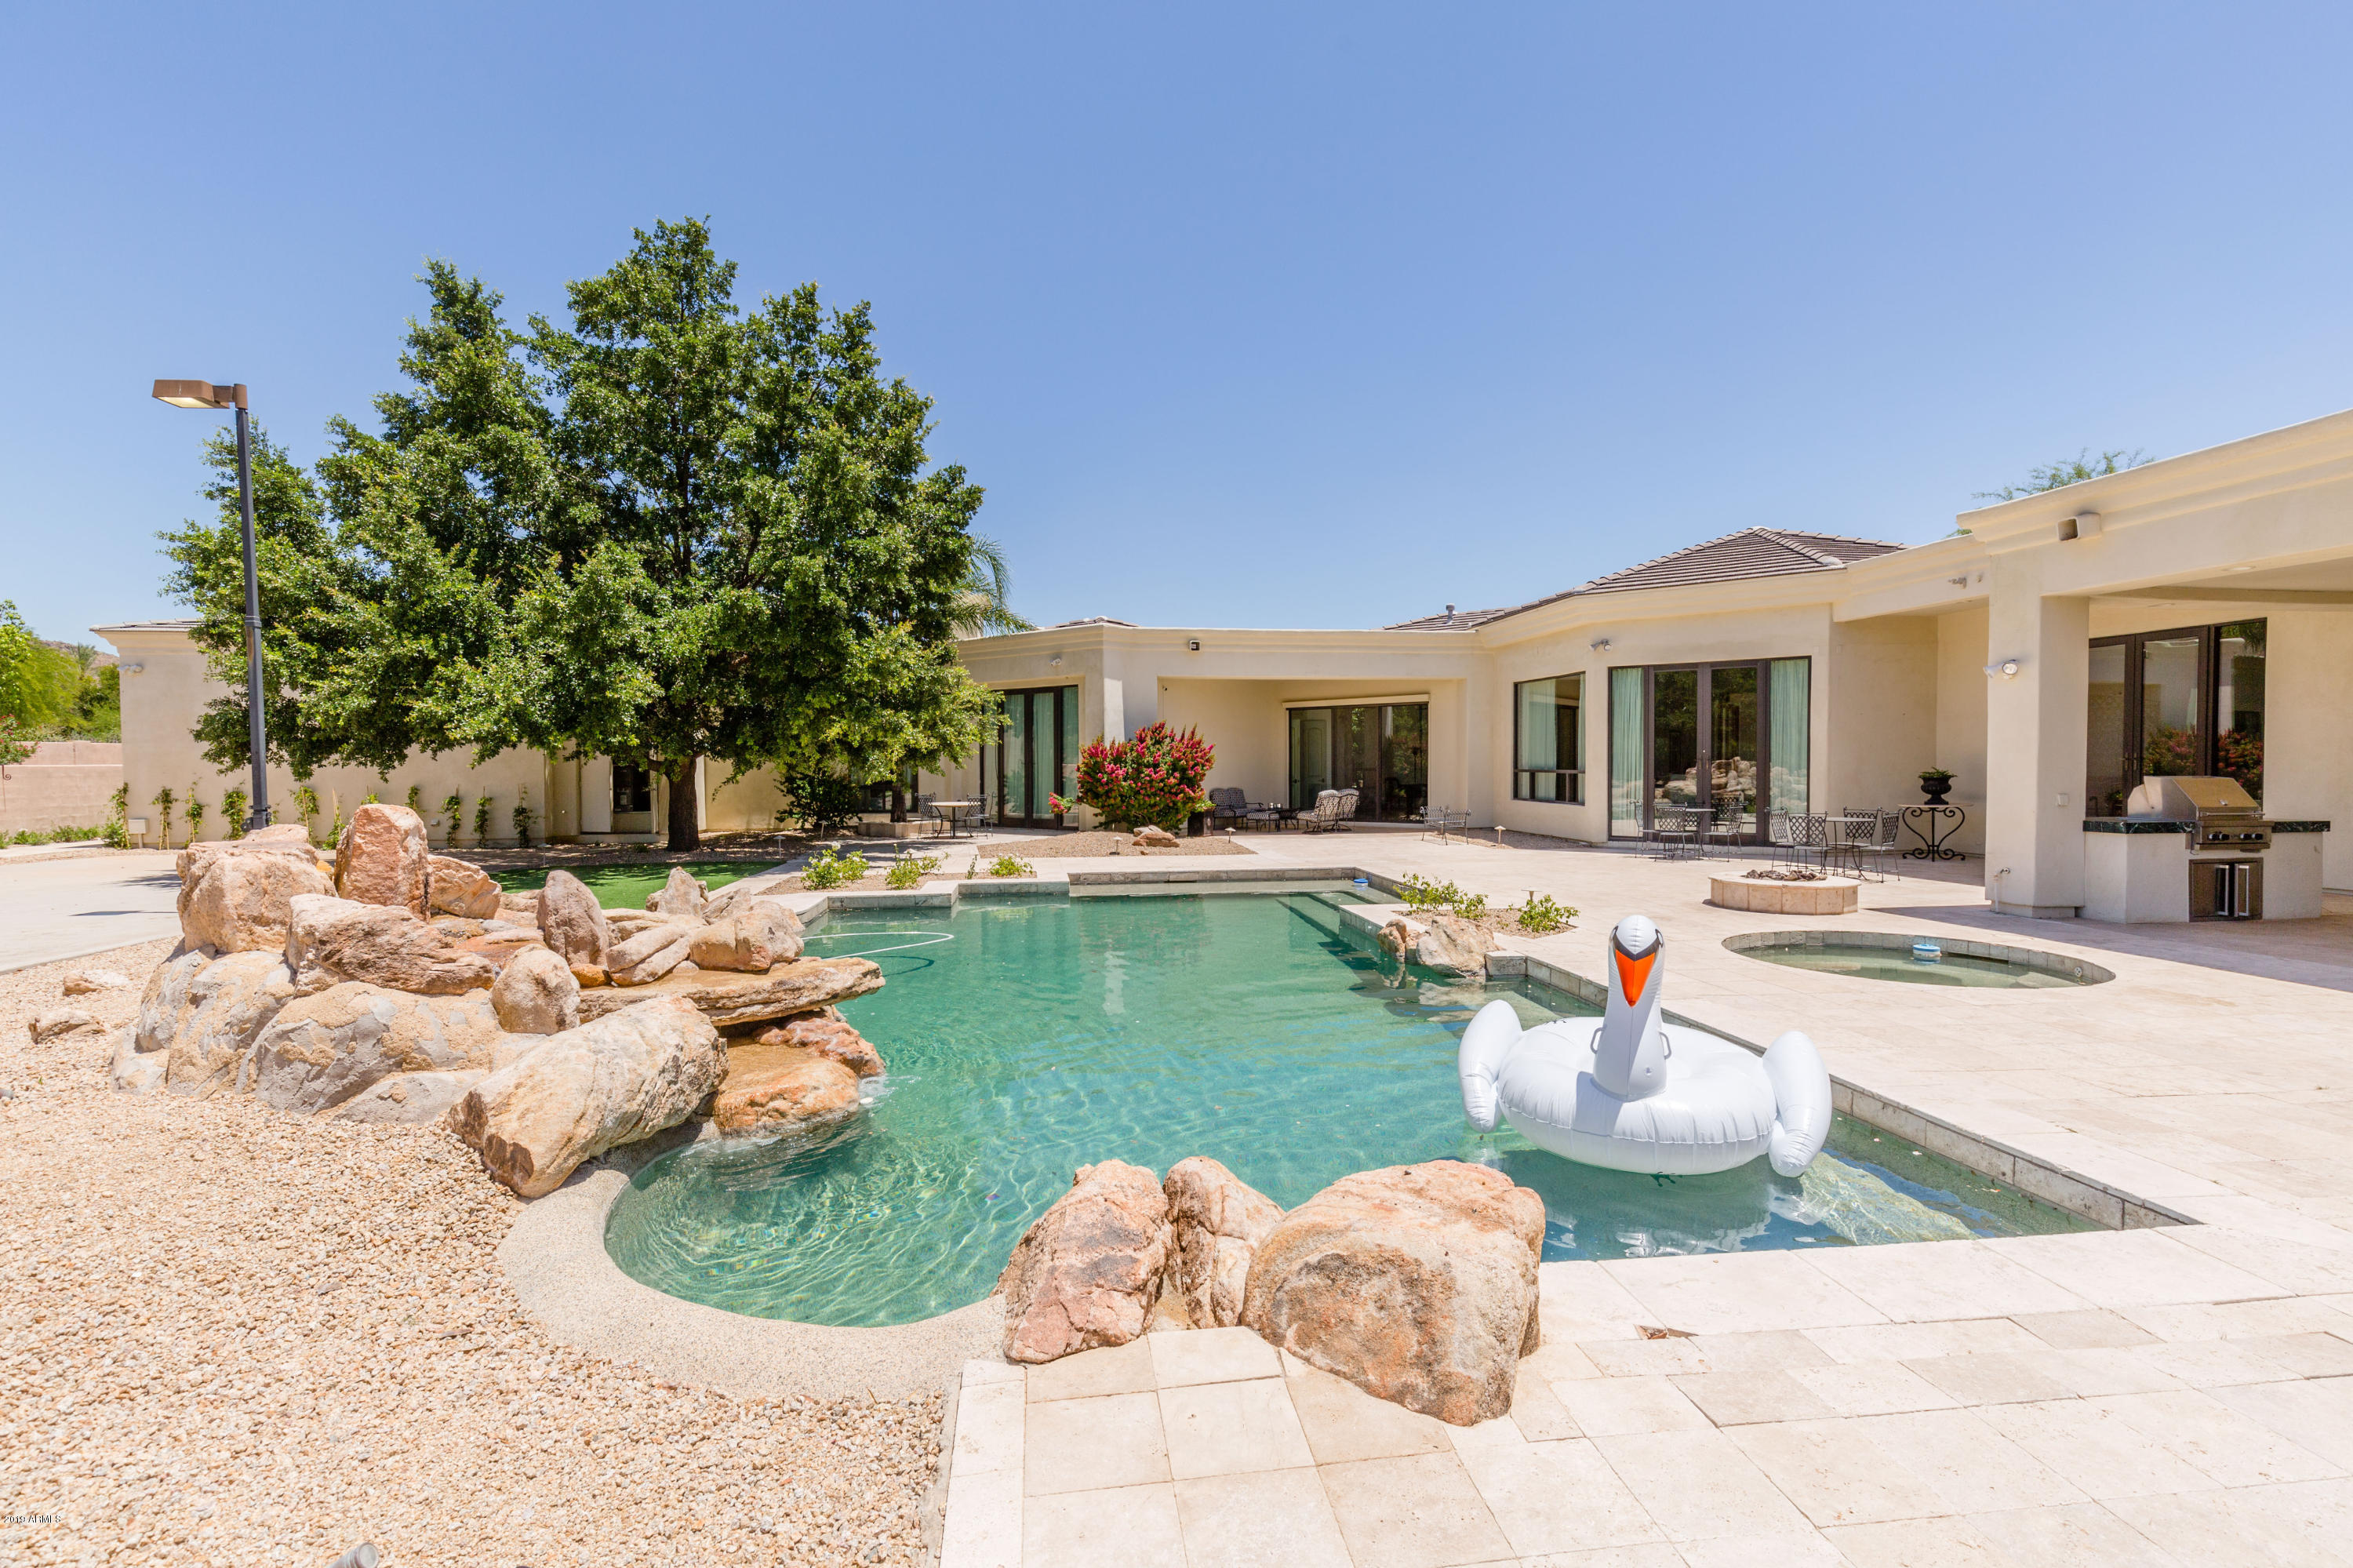 6502 N LOST DUTCHMAN Drive, Paradise Valley, AZ 85253, 5 Bedrooms Bedrooms, ,Residential Lease,For Rent,6502 N LOST DUTCHMAN Drive,6062982